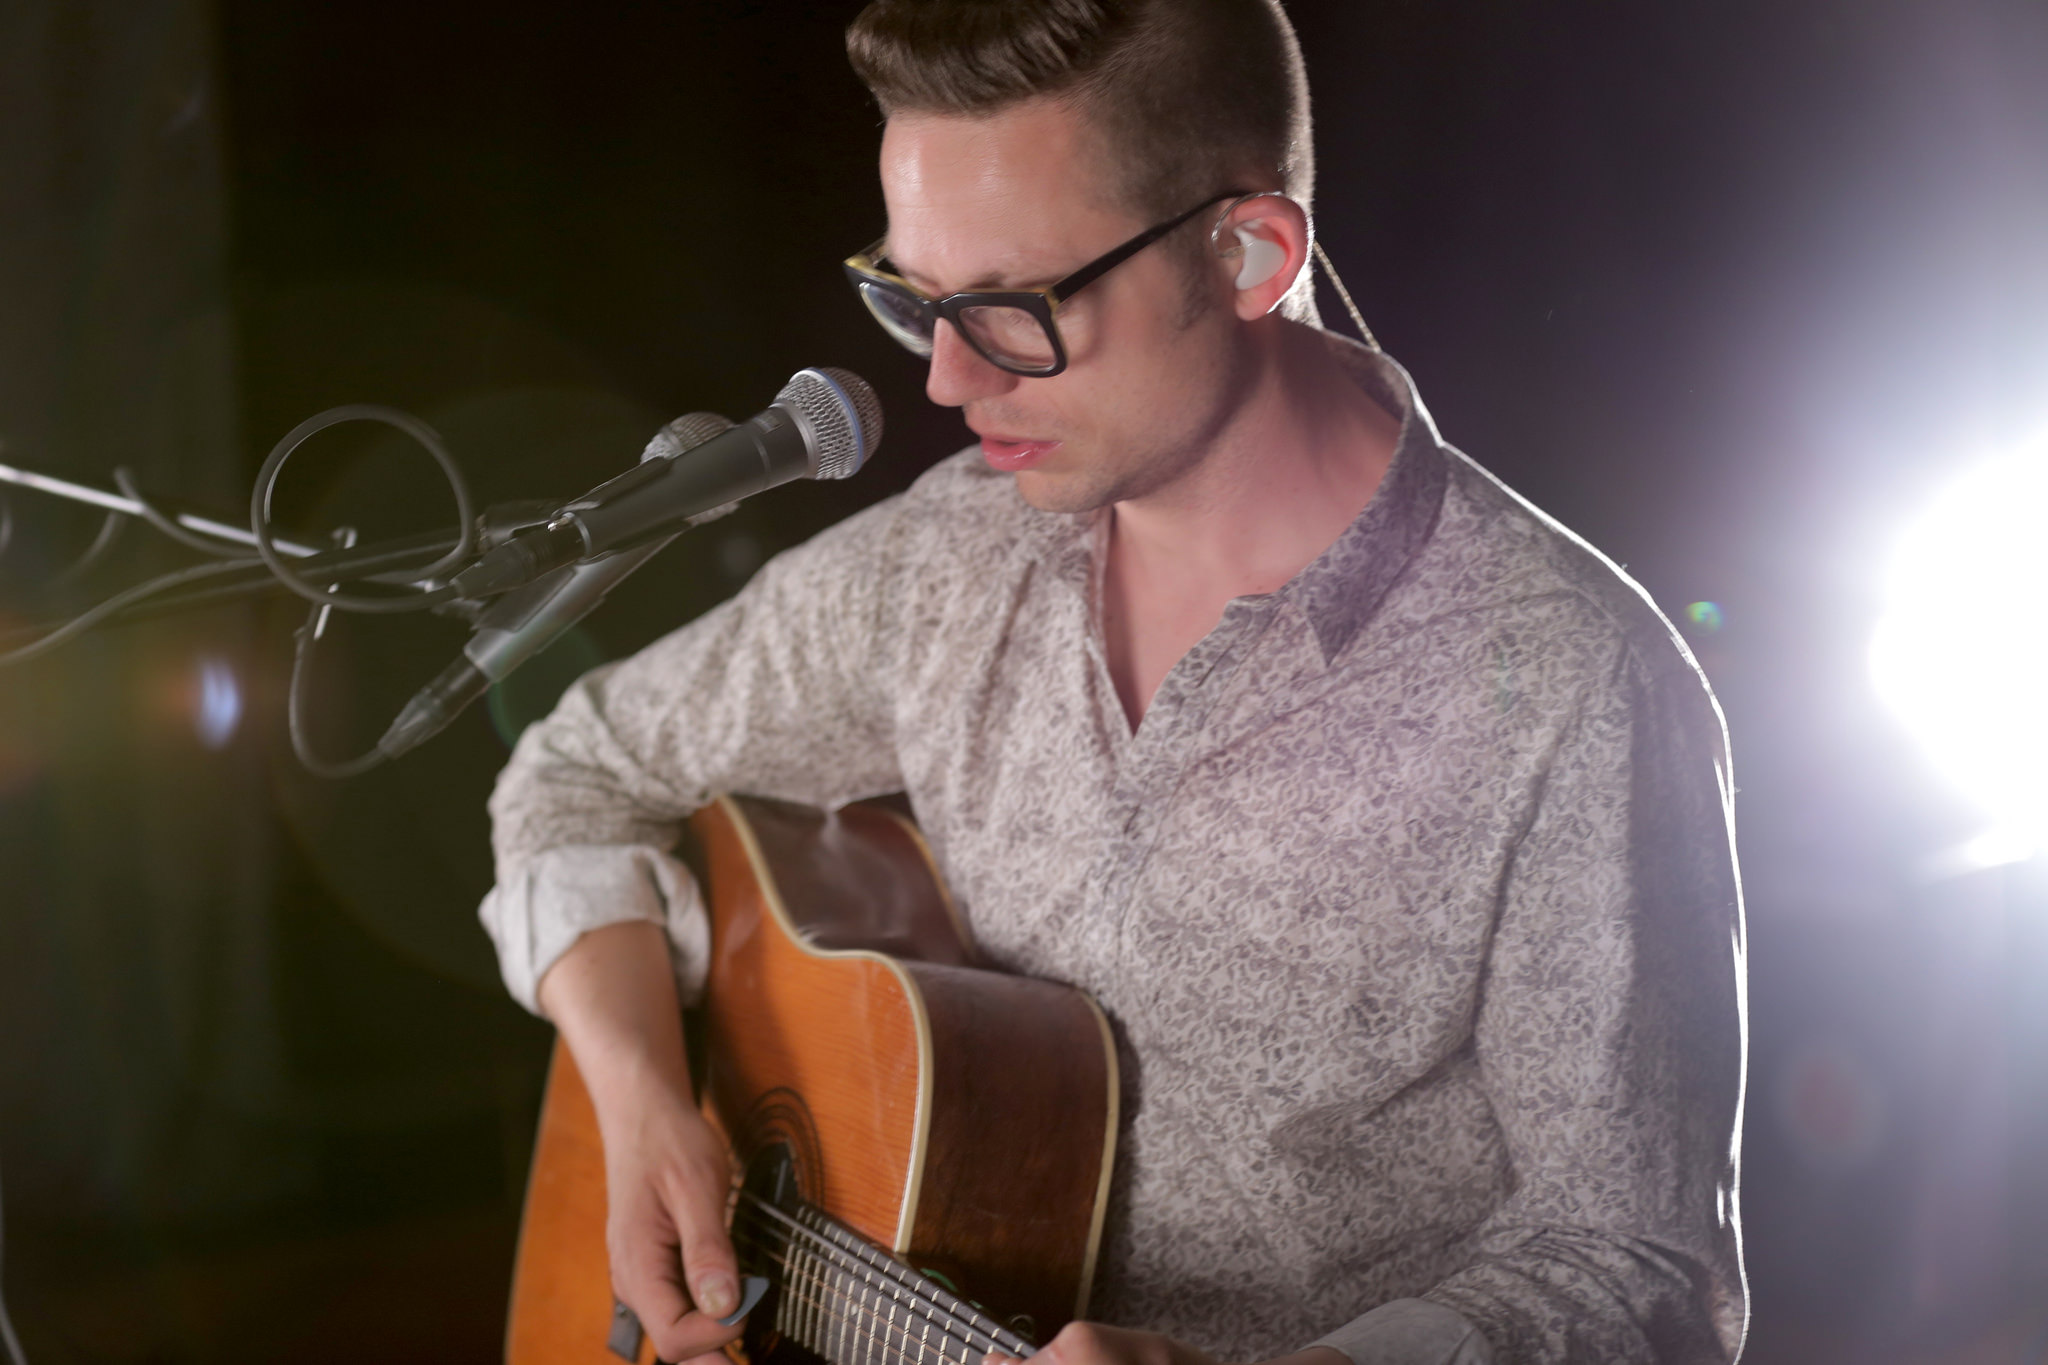 Hear an FUV Live session with Bernhoft tonight at 9.